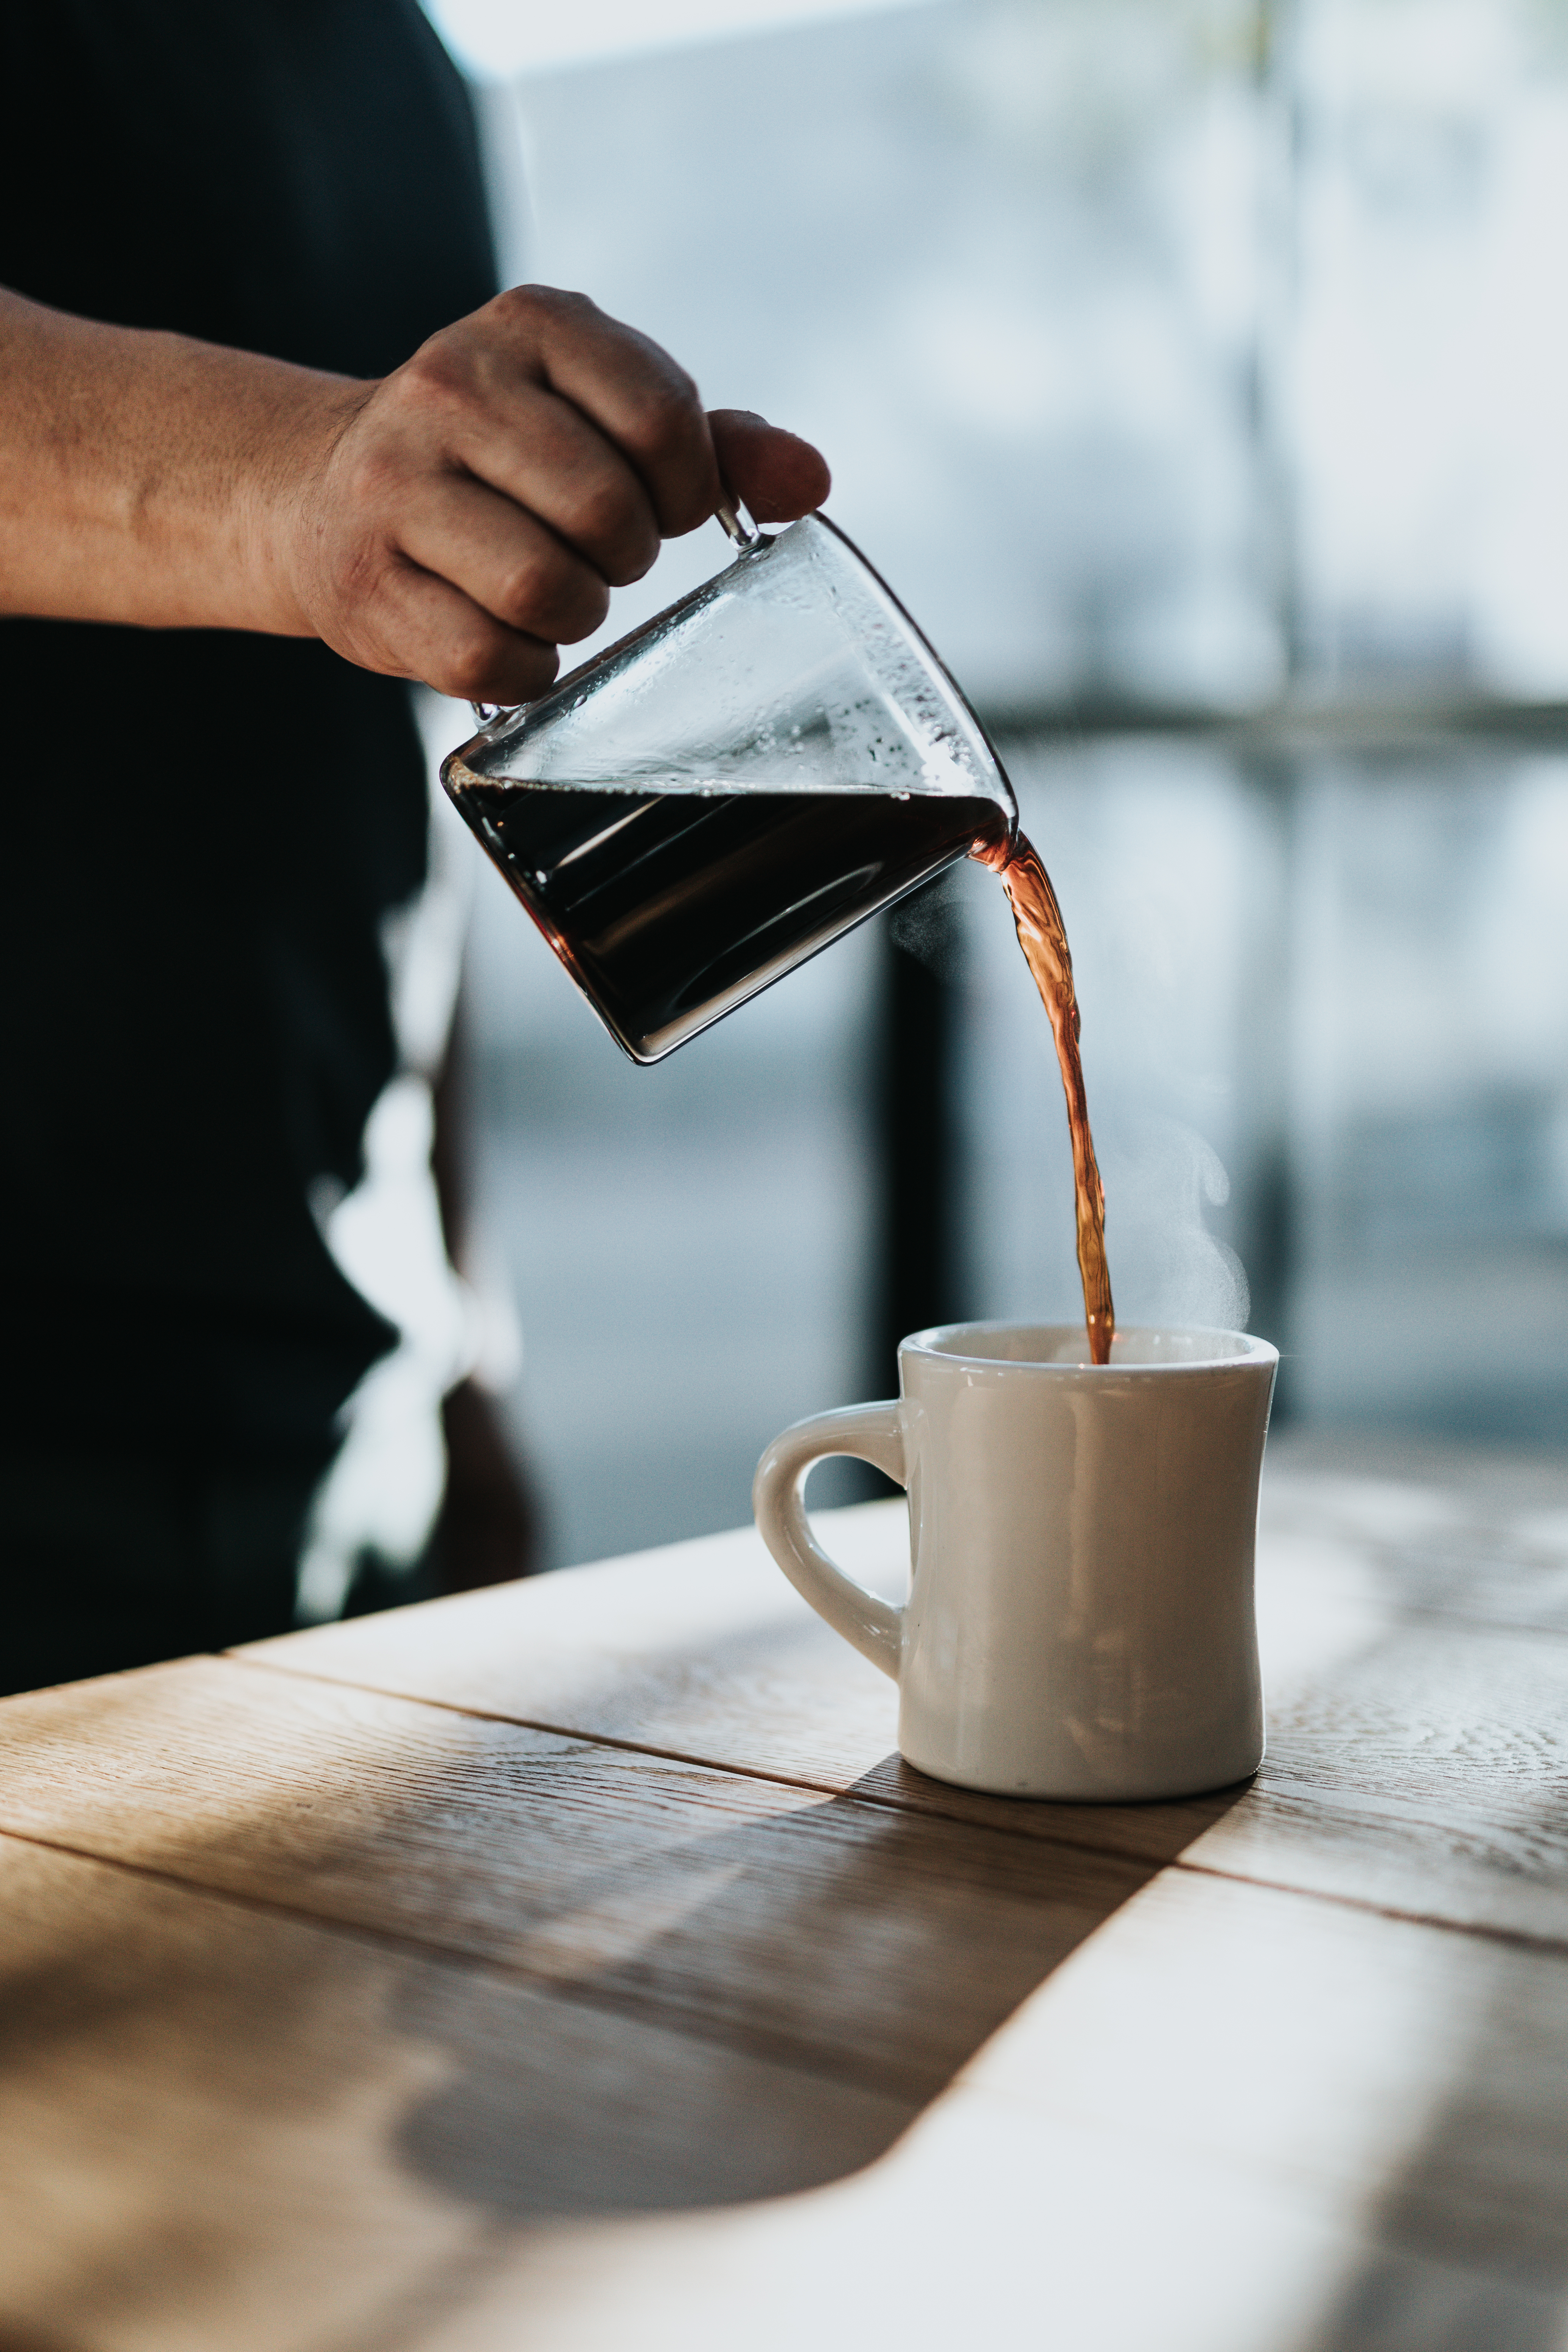 person pouring black coffee in white ceramic mug placed on brown wooden table during daytime, best high energy strains